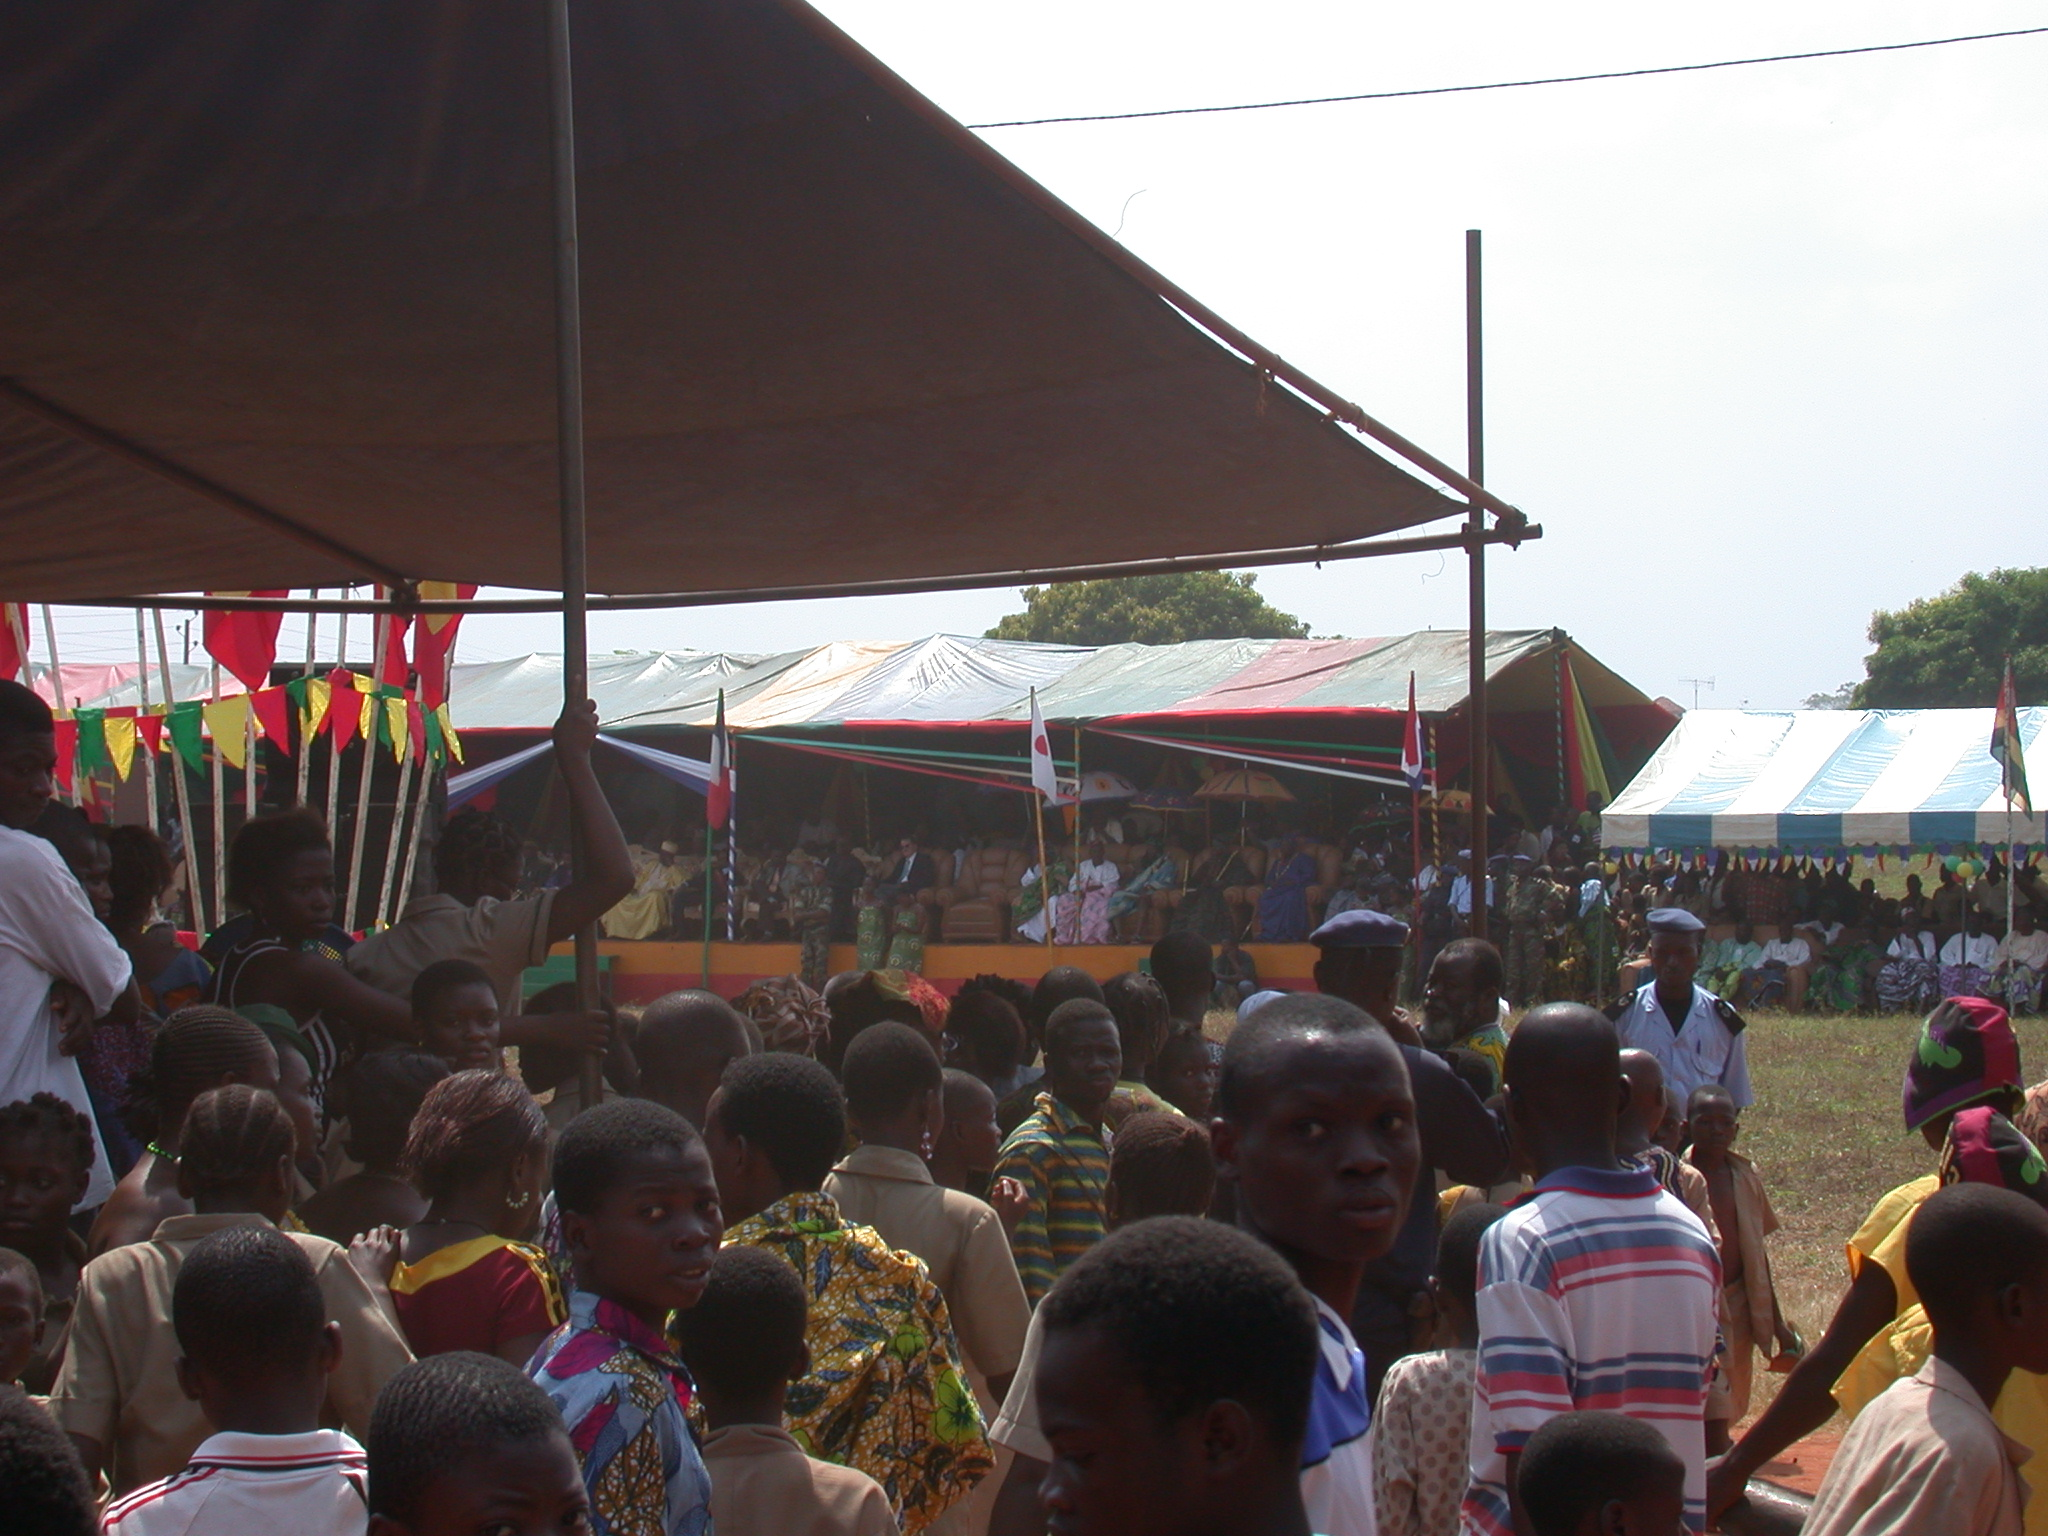 Bleachers for Officials and Audience, Danxome Festival Celebrations at Palace Grounds, Abomey History Museum, Abomey, Benin